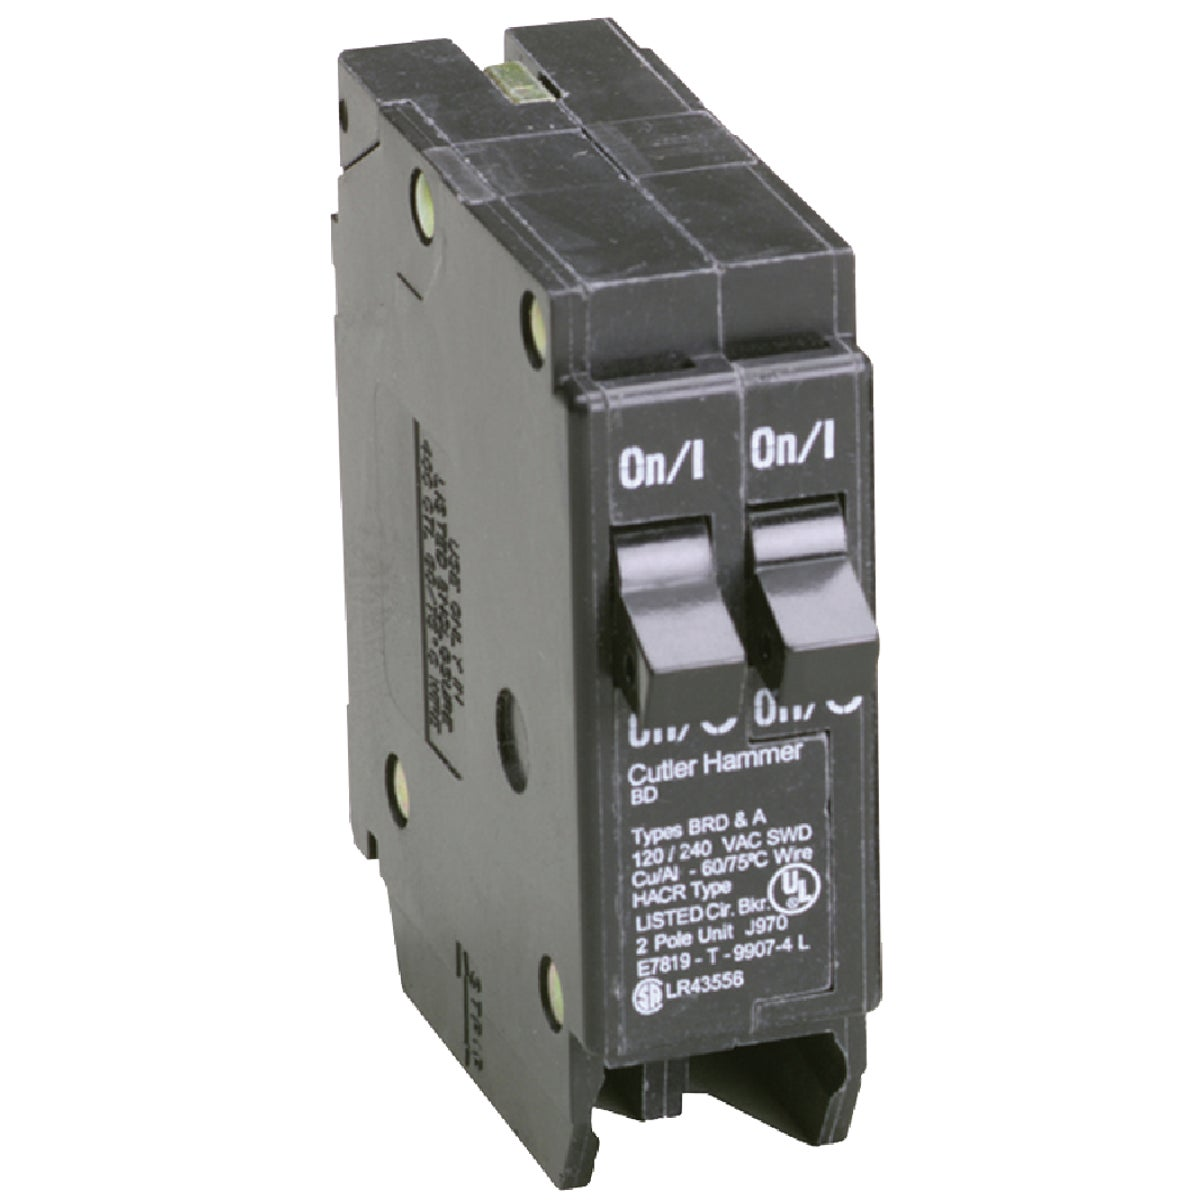 15A/20A CIRCUIT BREAKER - BD1520 by Eaton Corporation